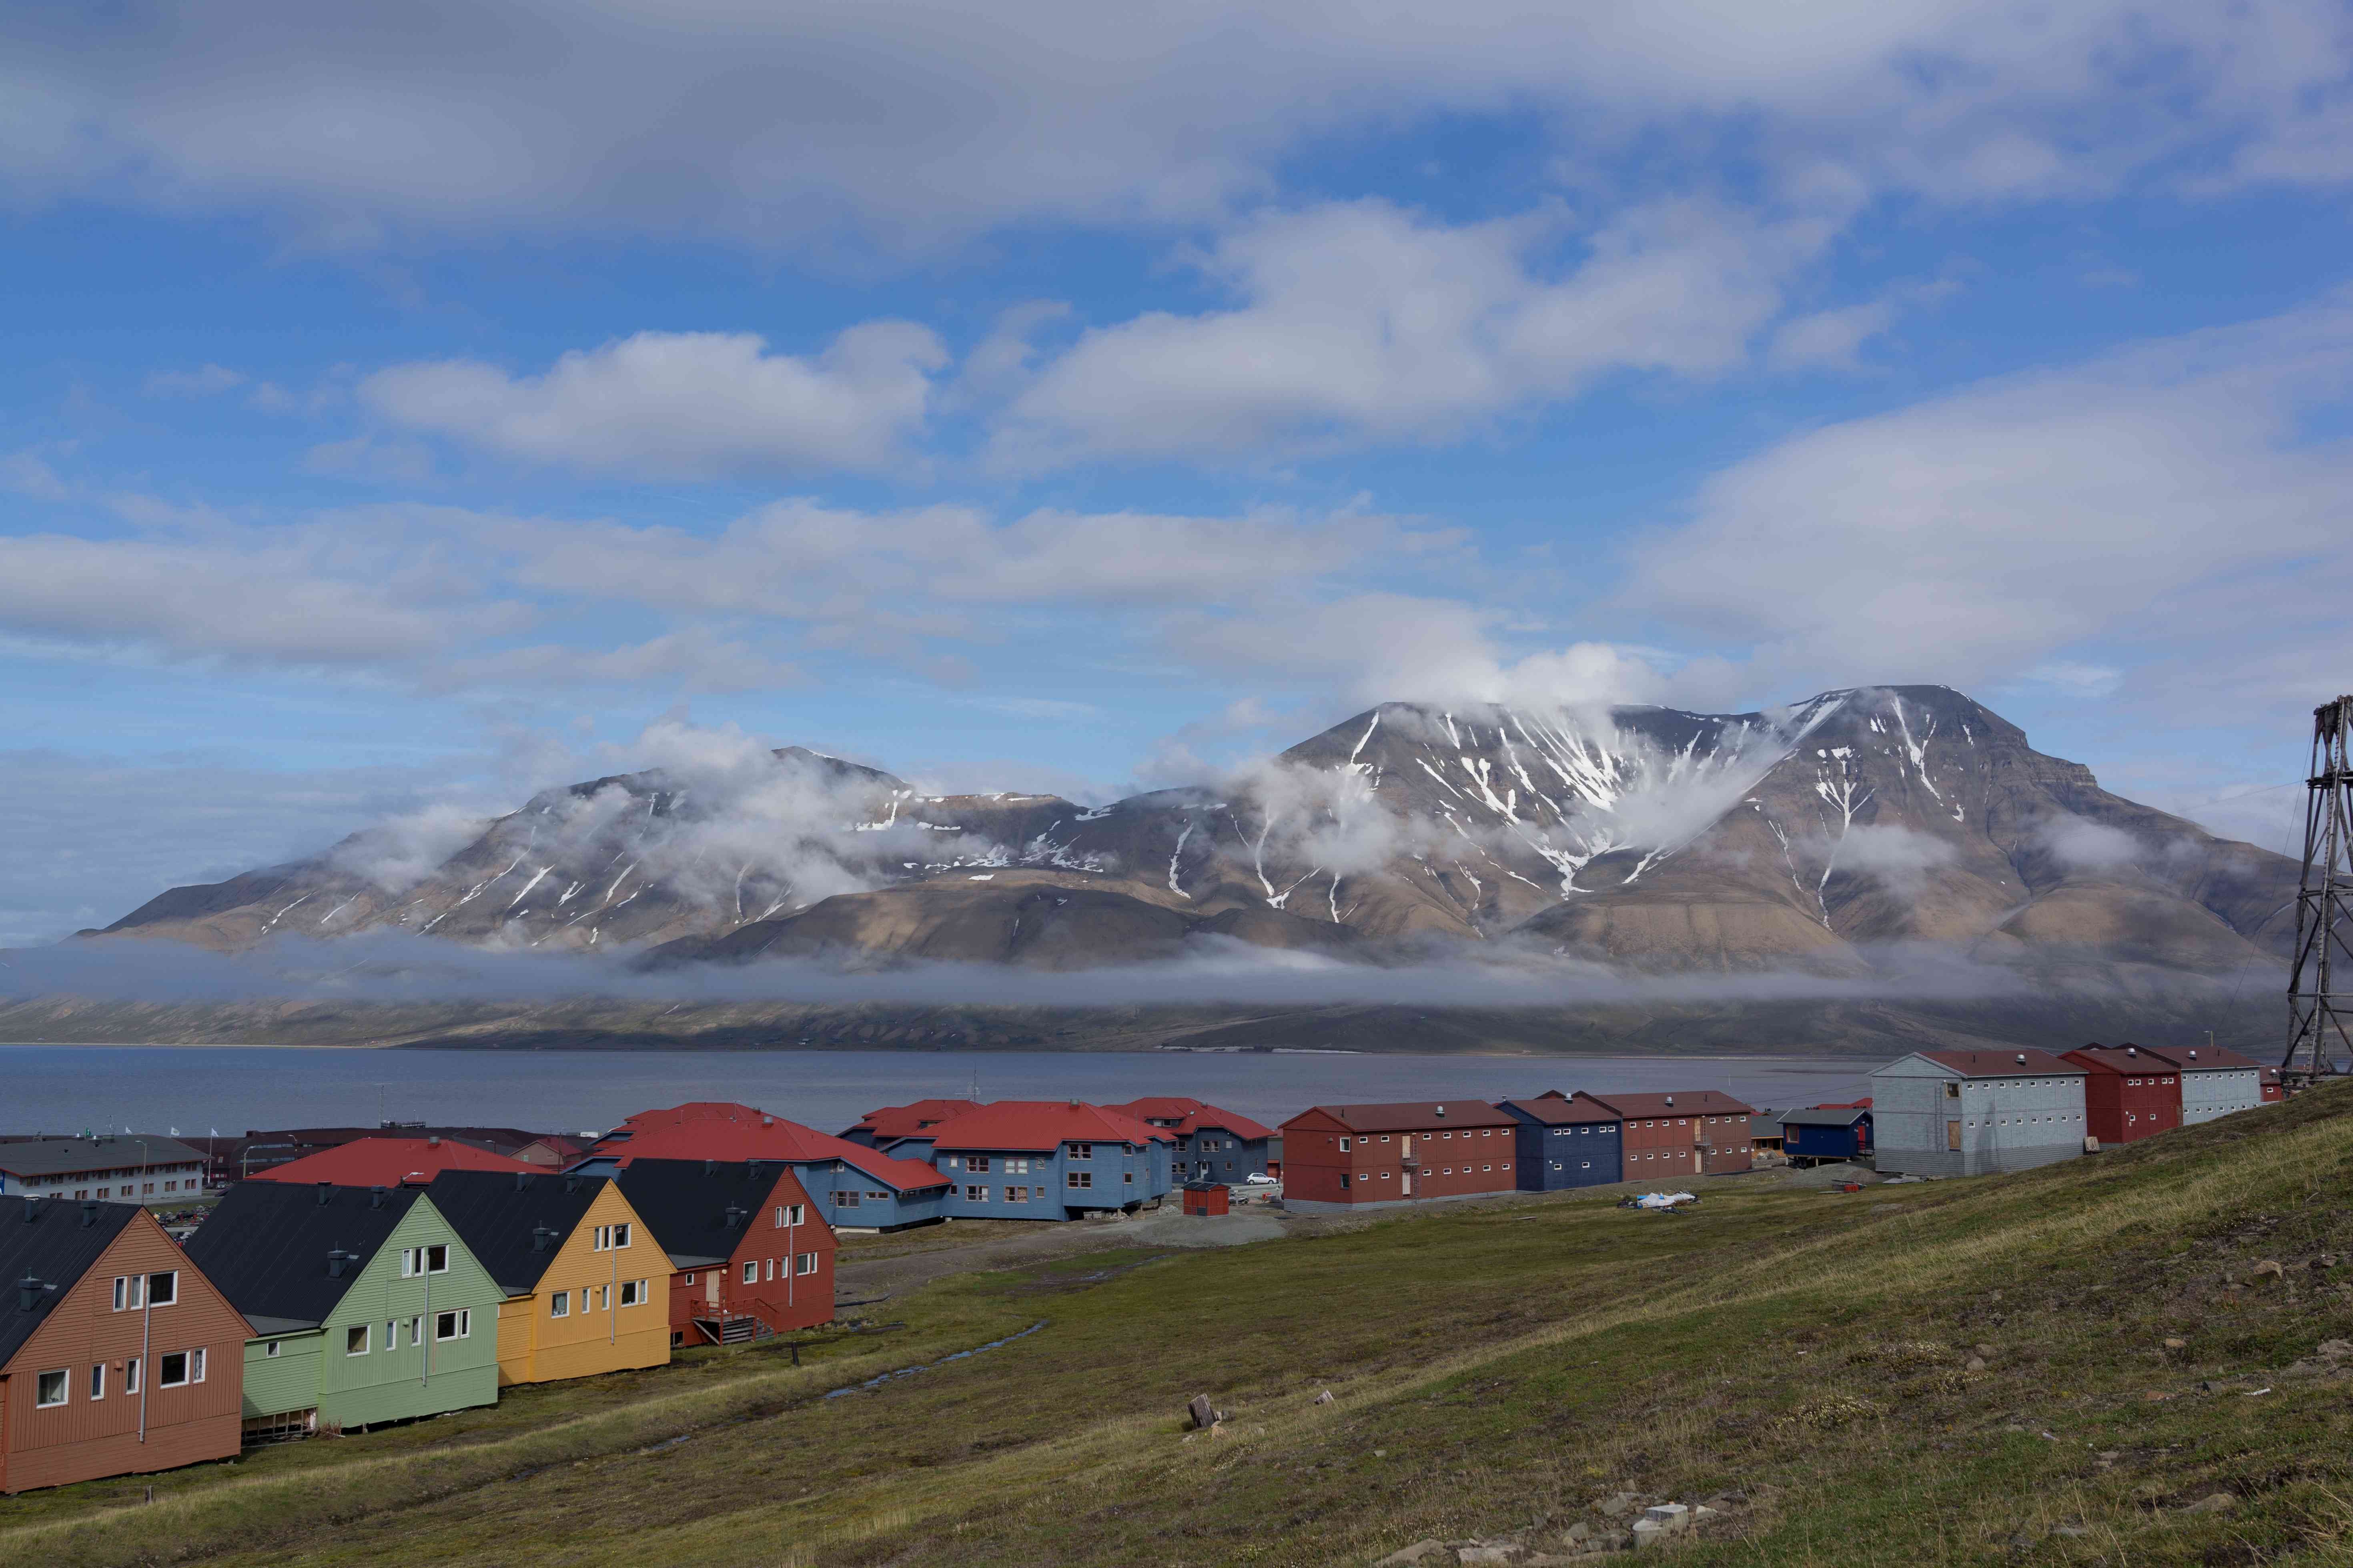 Detached houses with mountains in background, Longyearbyen, Svalbard, Norway